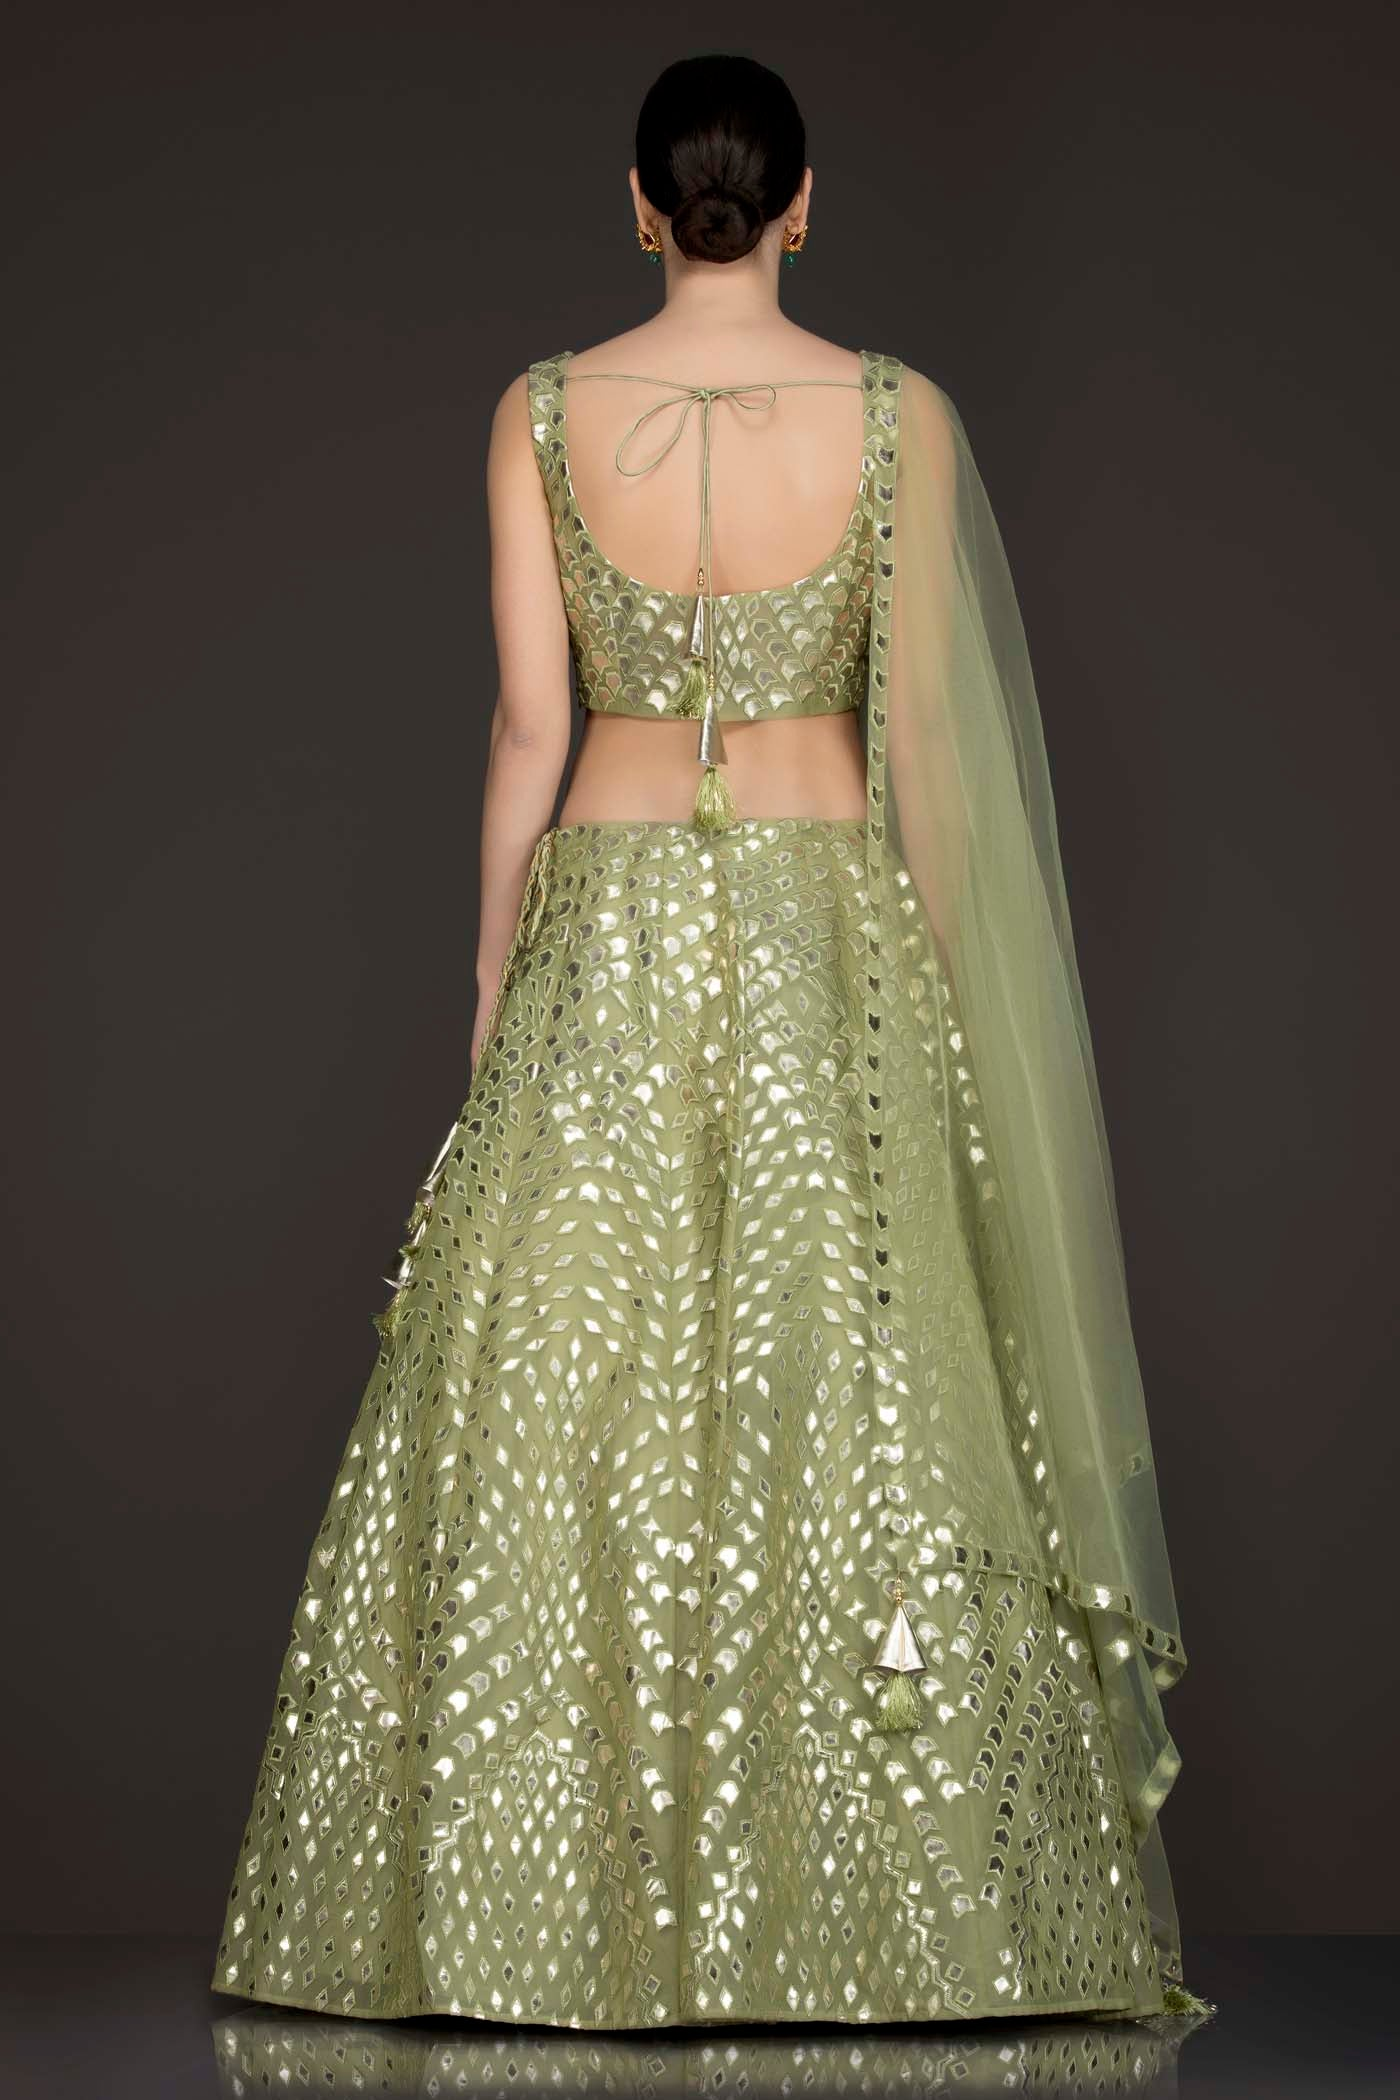 Olive Green Organza Lehenga-Top With Leather Patch Embroidery